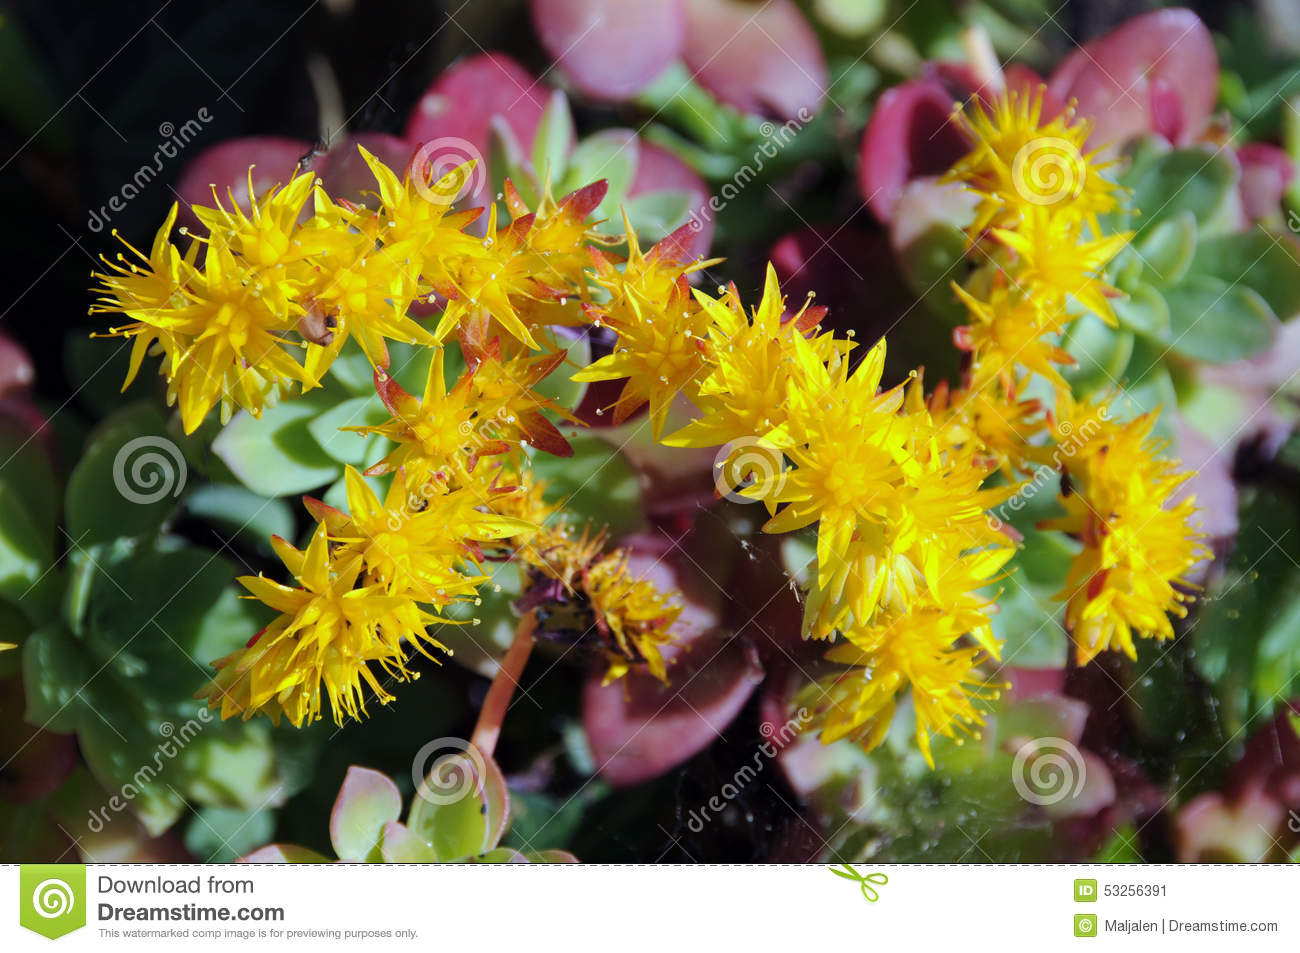 Yellow flowering succulent plant stock image image of bloom yellow flowering succulent plant mightylinksfo